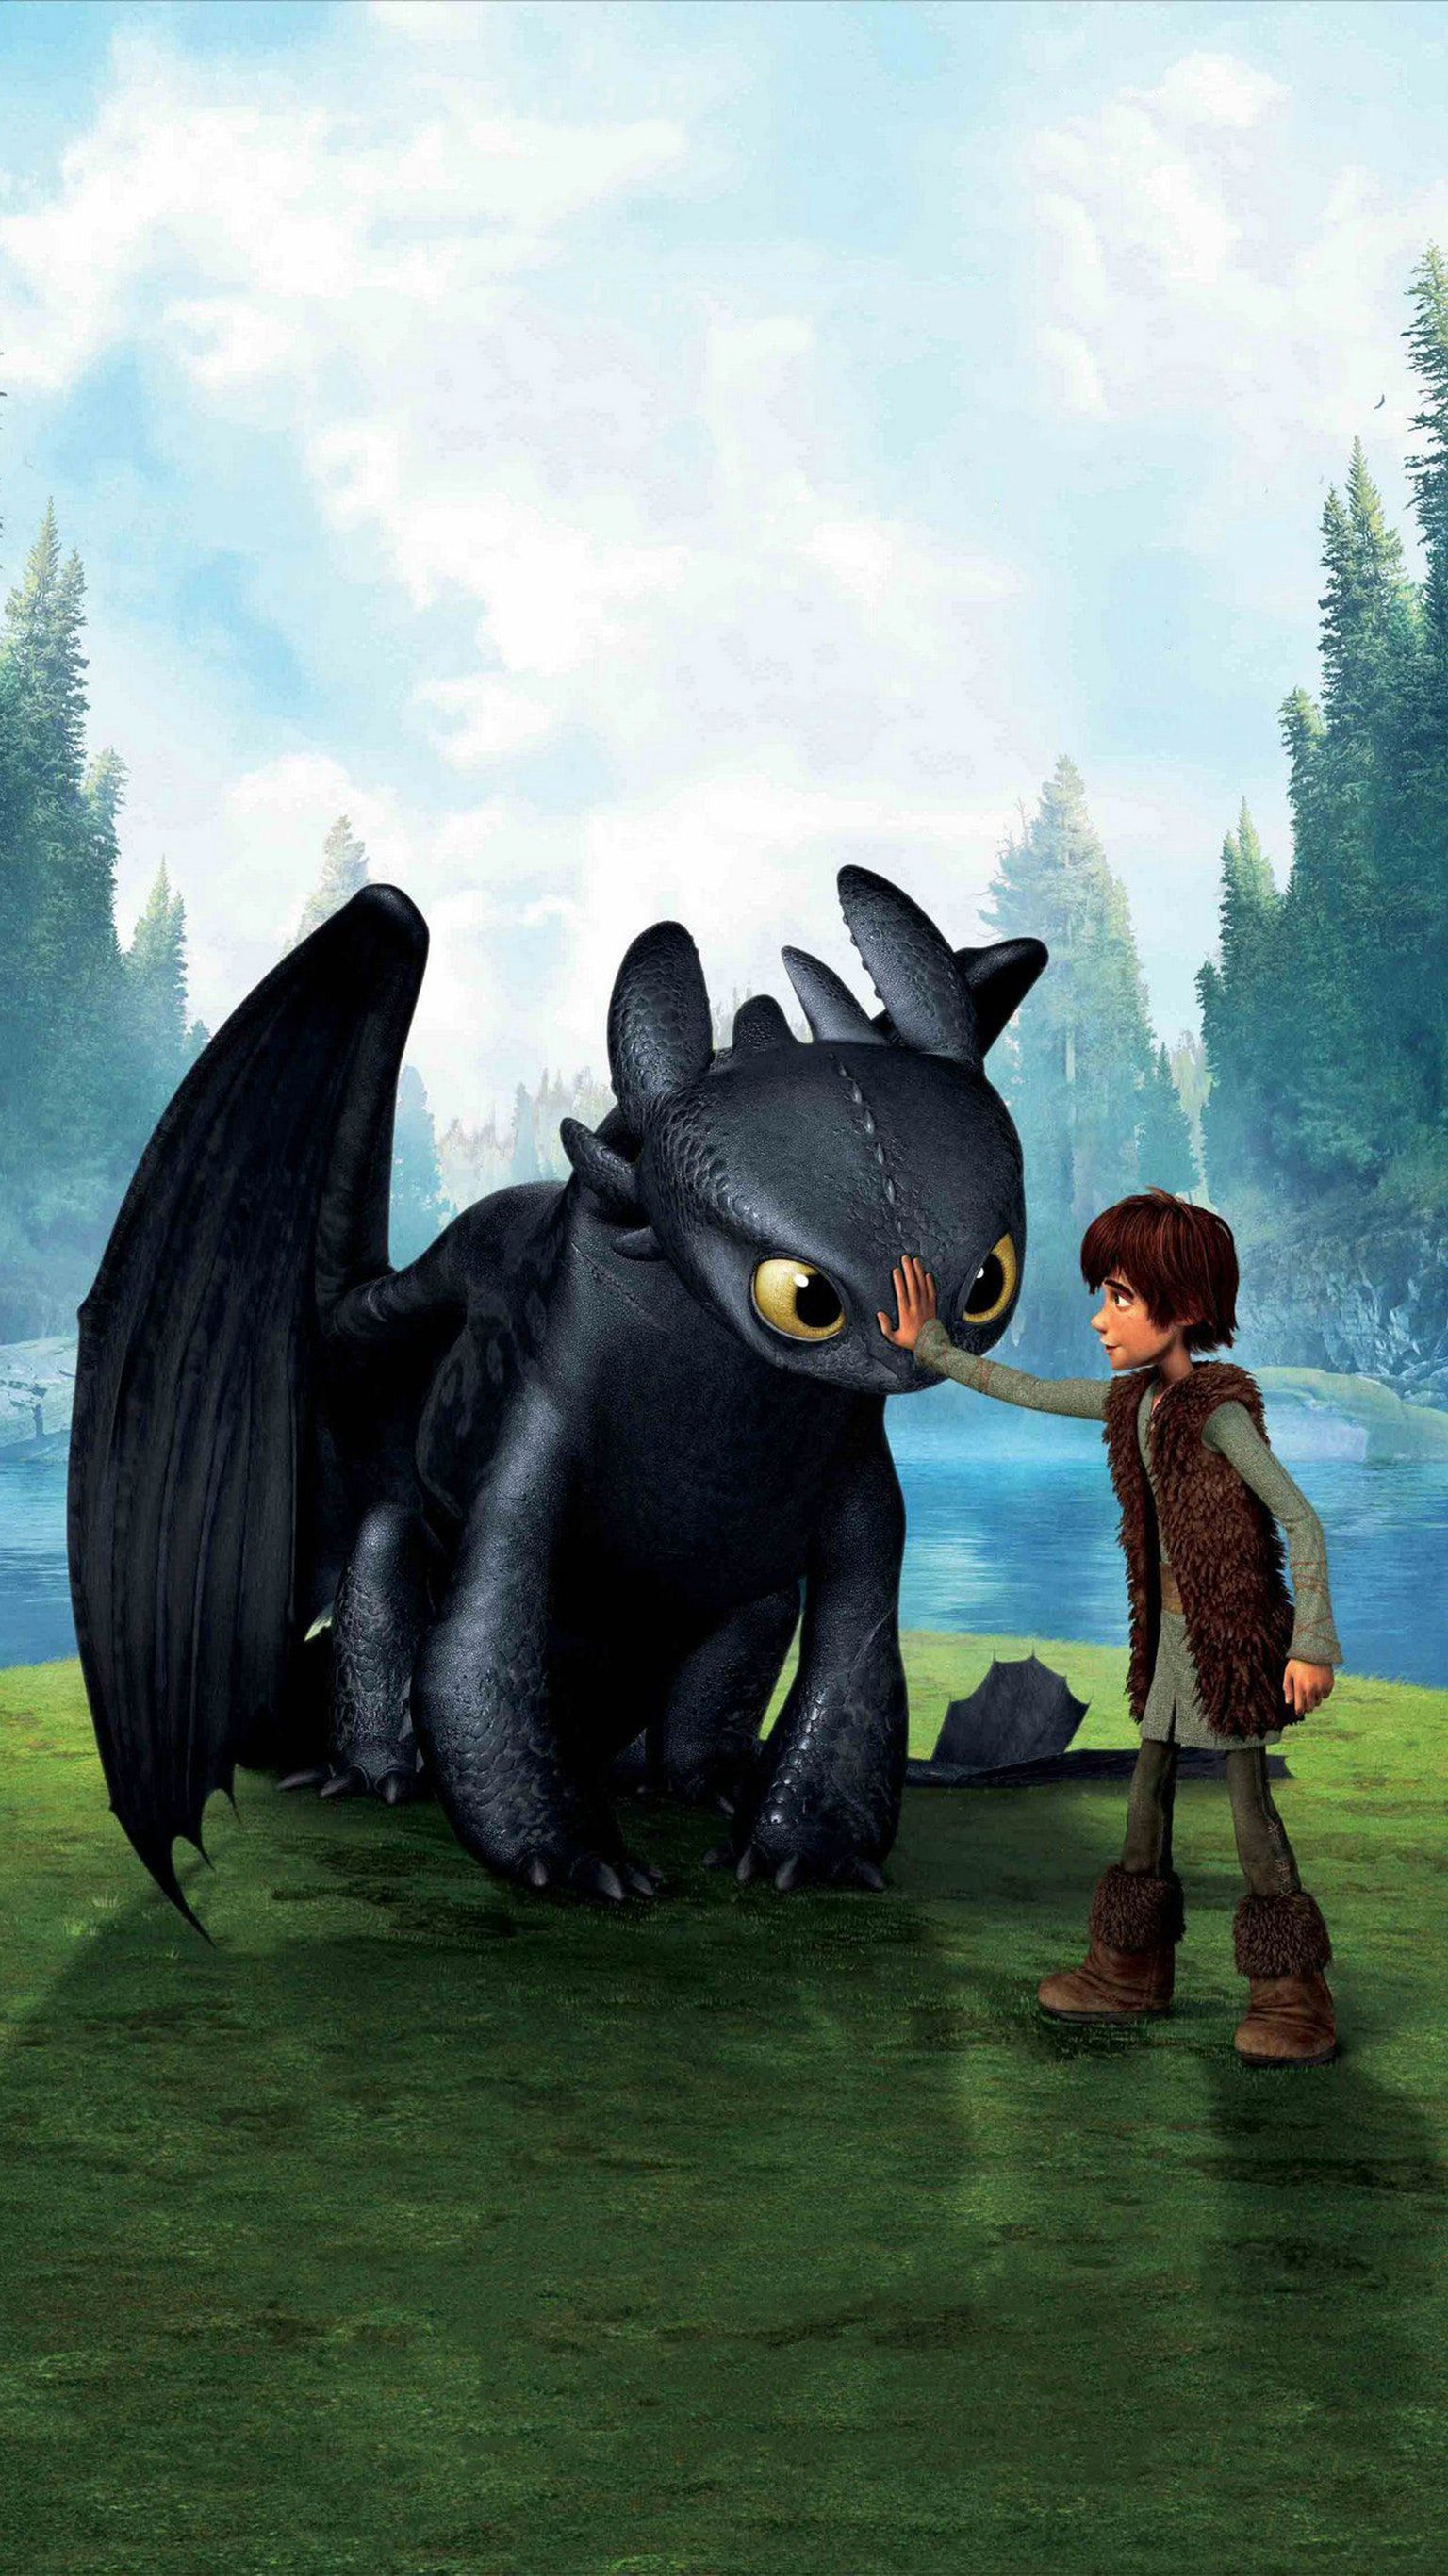 How To Train Your Dragon 2010 Phone Wallpaper Moviemania How Train Your Dragon How To Train Your Dragon Dragon Movies